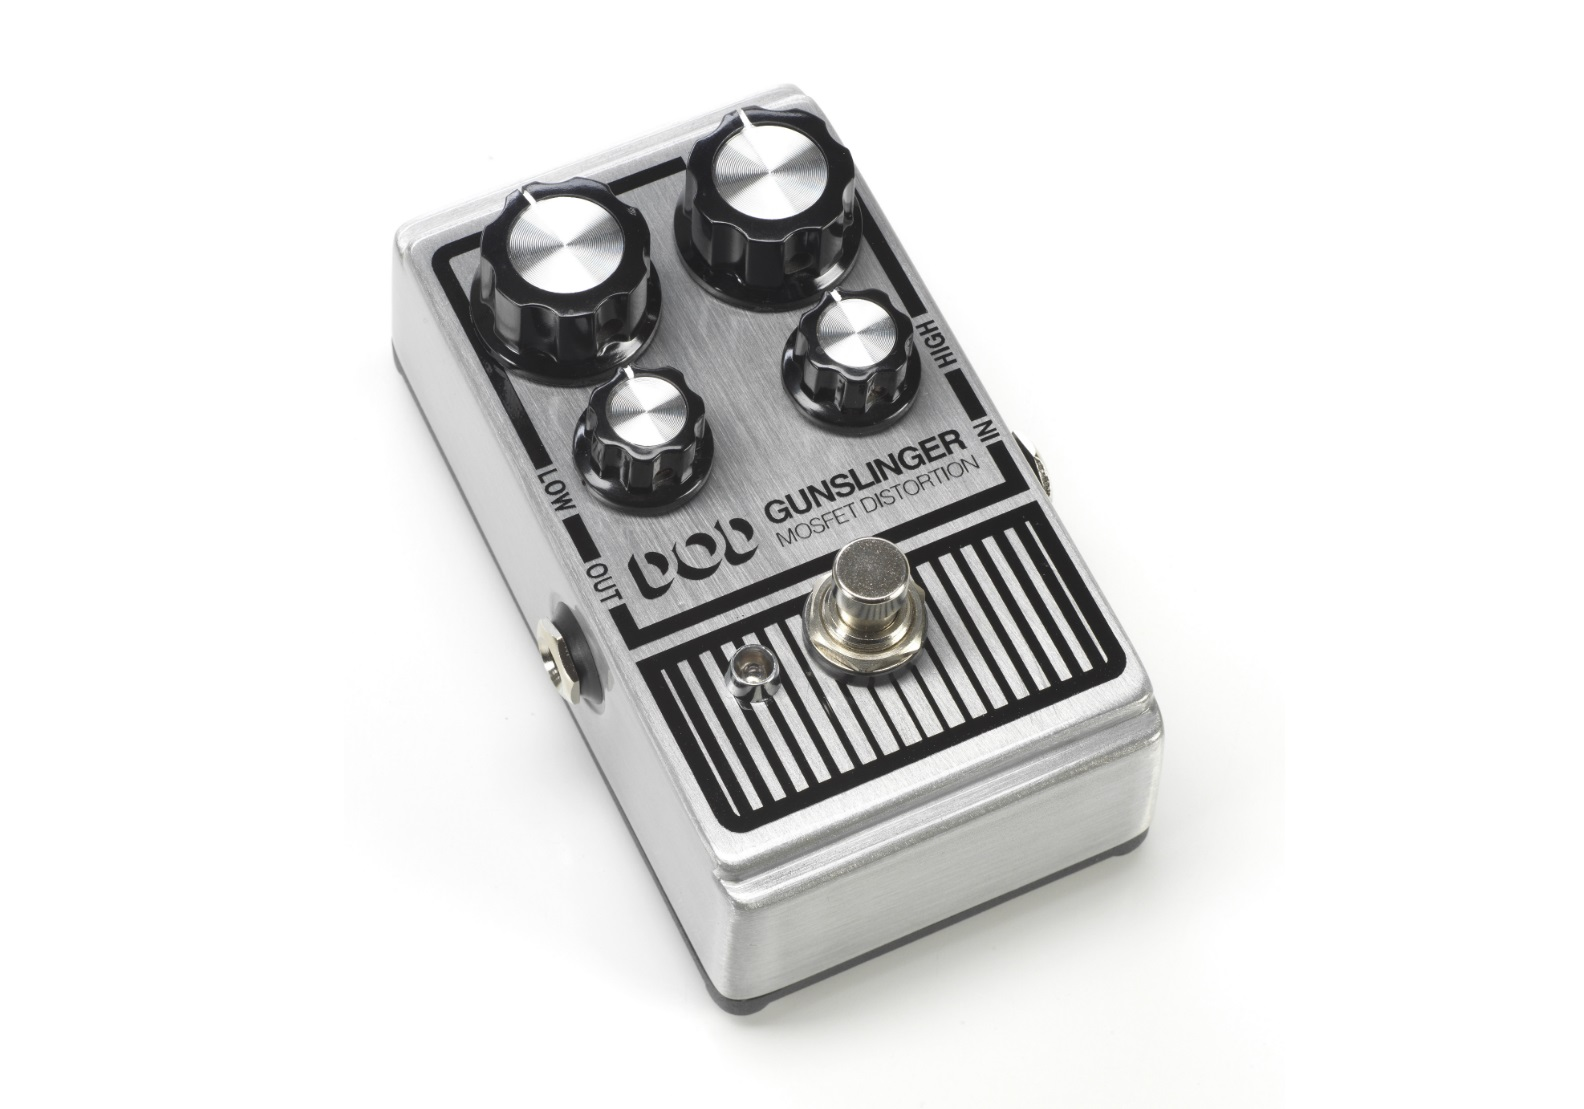 Digitech Dod Gunslinger Mosfet Distortion guitar effects pedal review